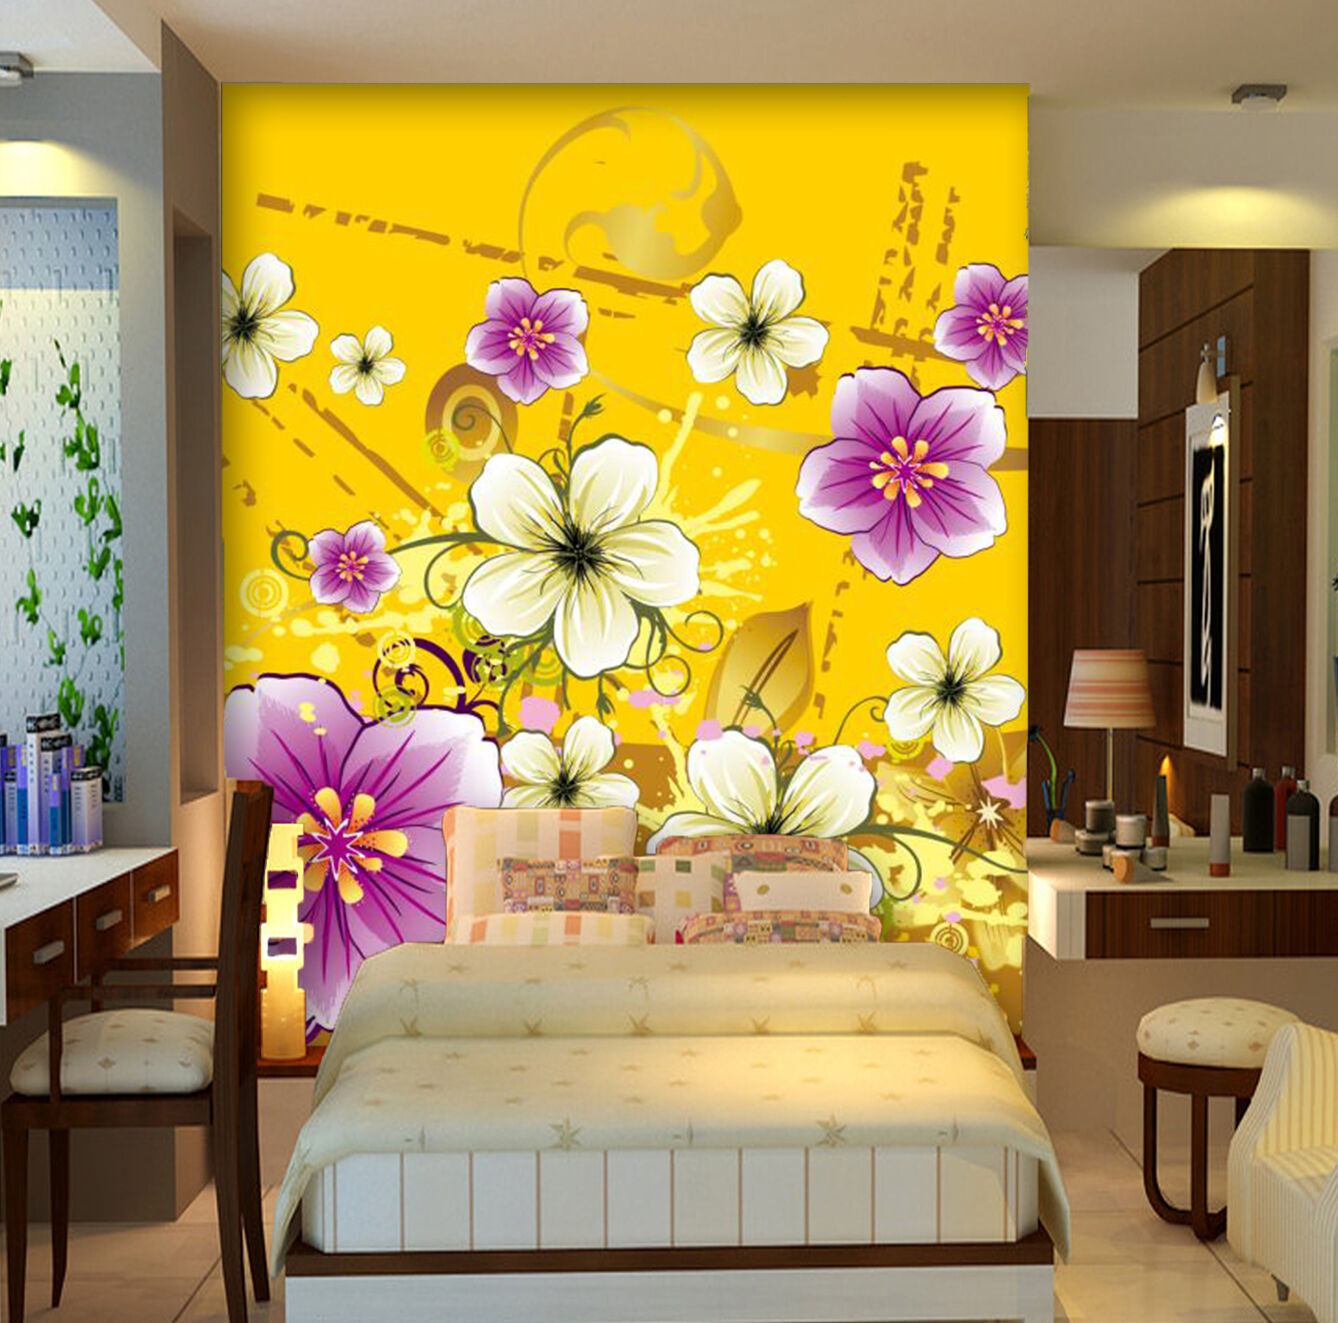 3D color Flowers Patterns 366 Wallpaper Decal Decor Home Kids Nursery Mural Home